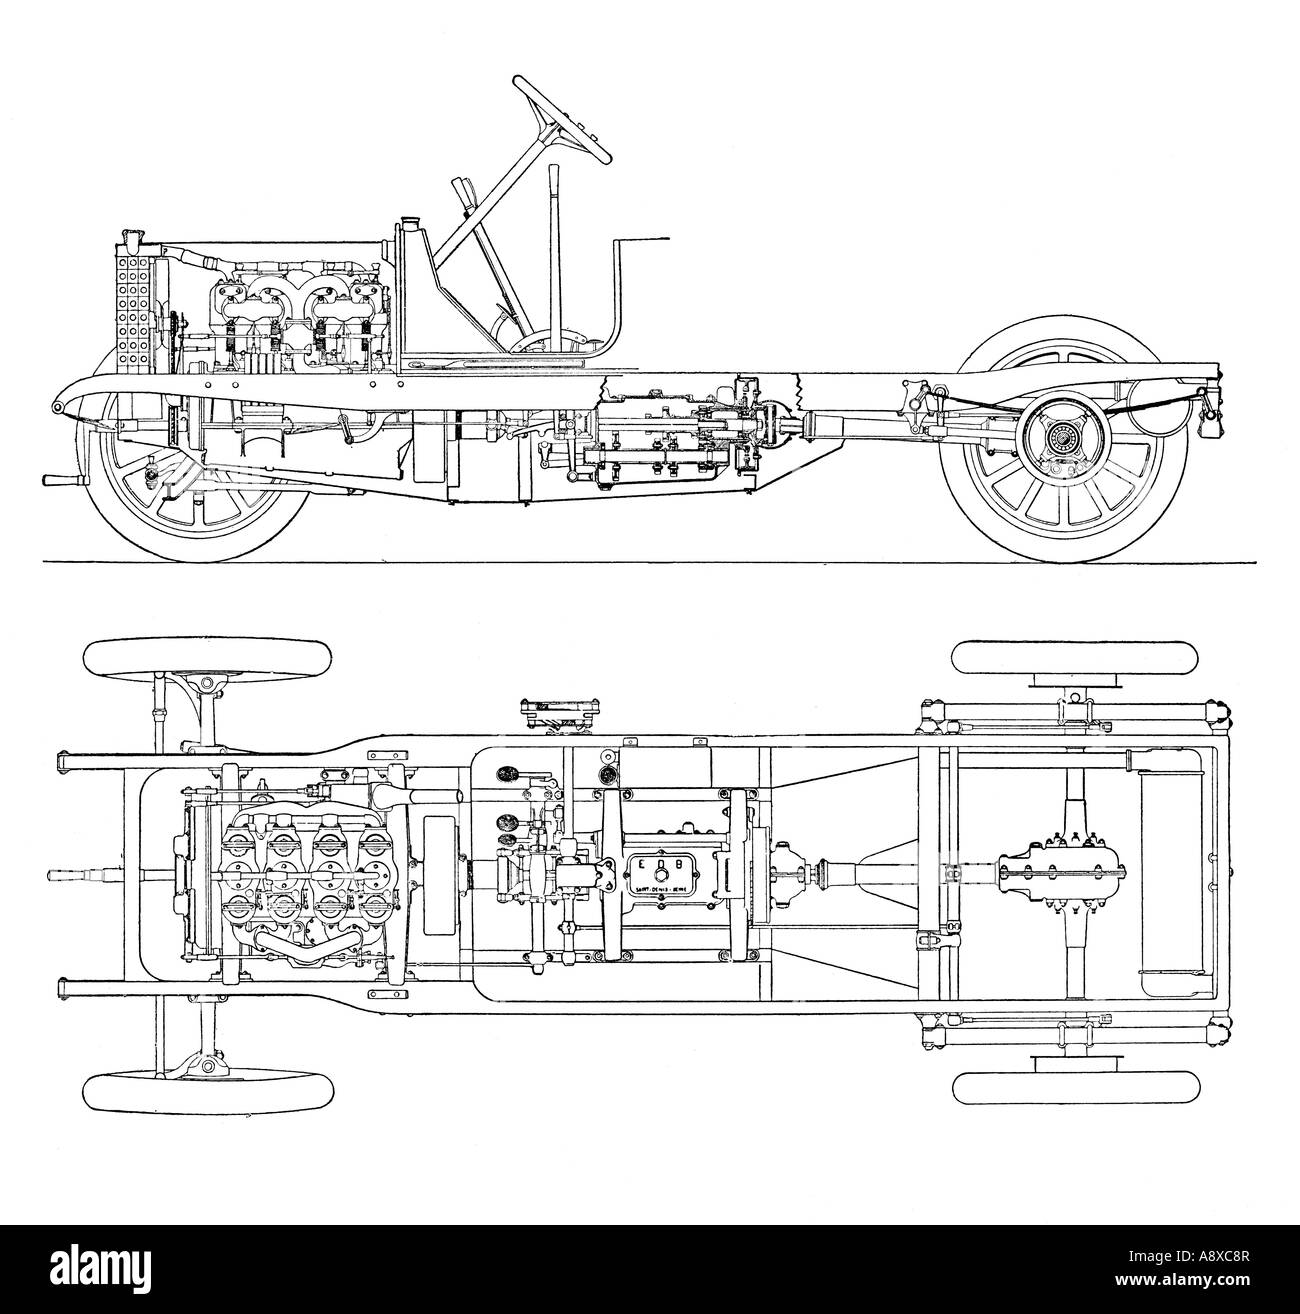 diagram of four cylinder petrol engine car chassis with cardan shaft rh  alamy com Car Engine